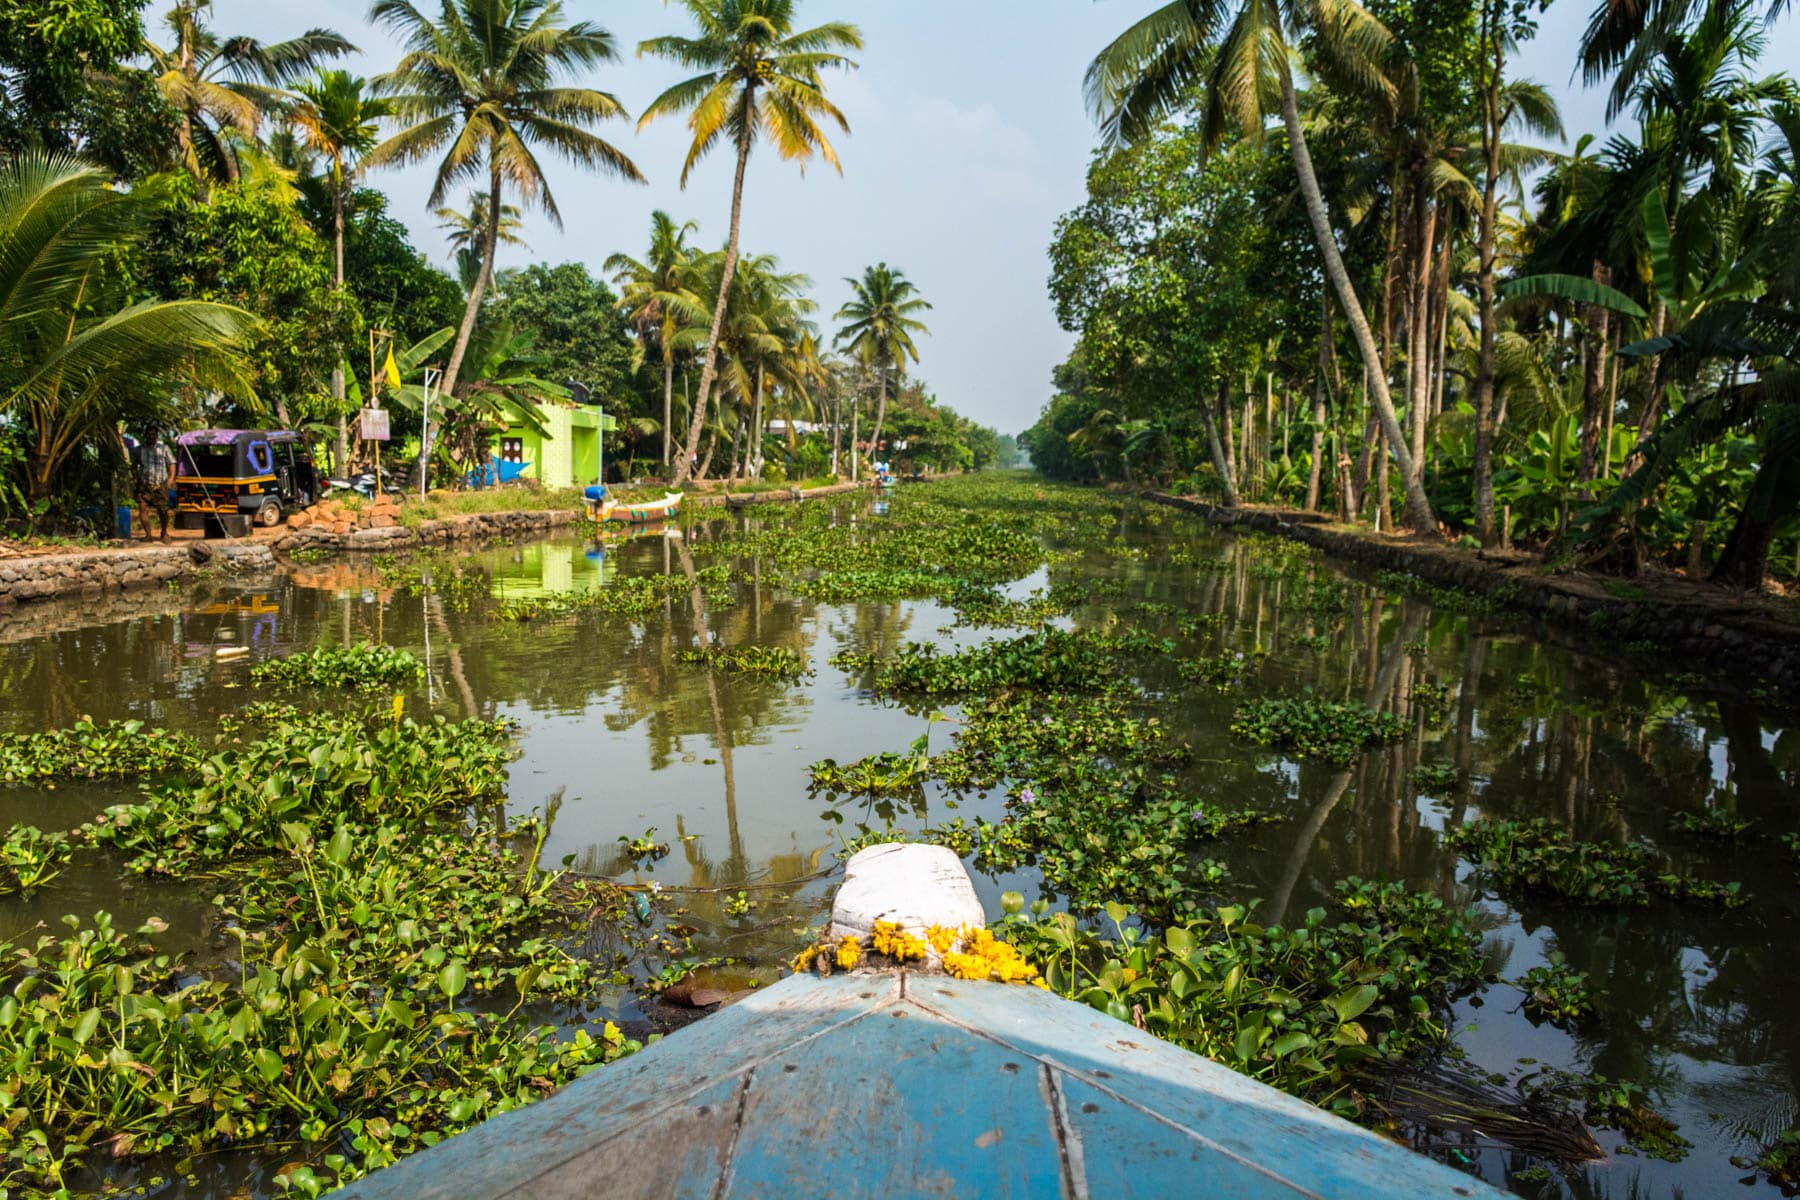 Local ferry in the backwaters of Alleppey, Kerala, India